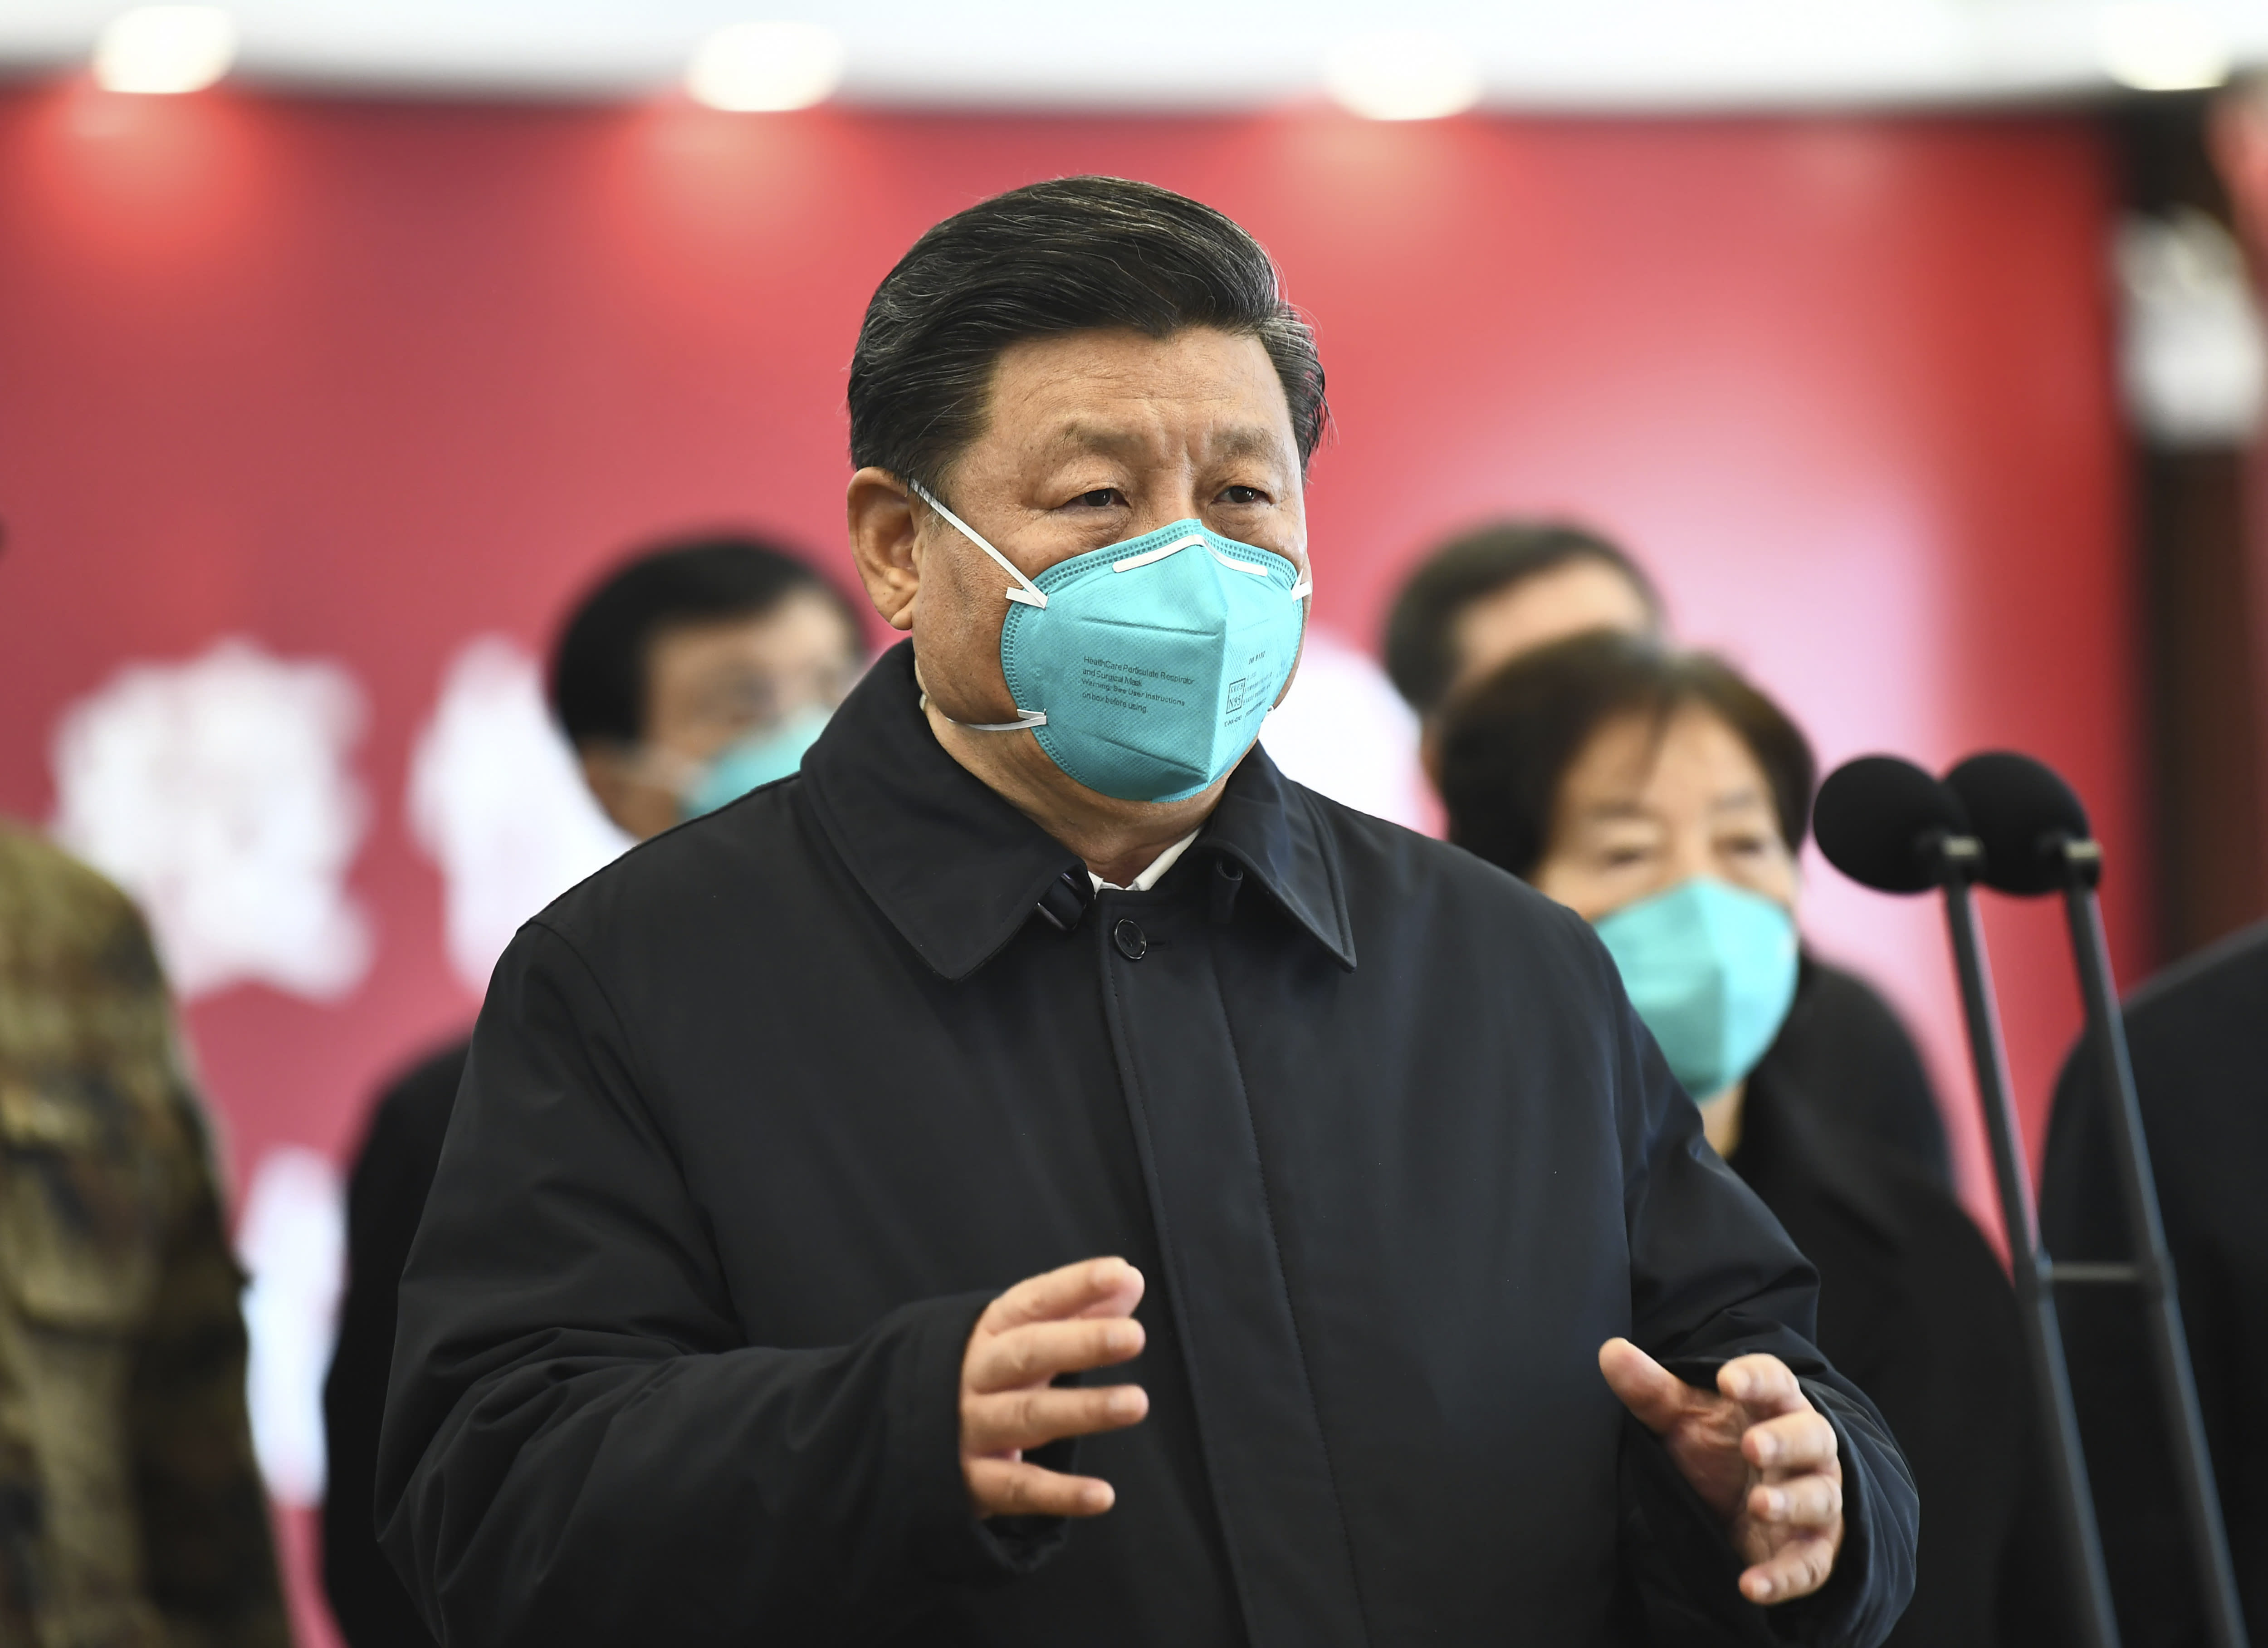 Hold China accountable for coronavirus, but don't 'scapegoat' them: CFR president